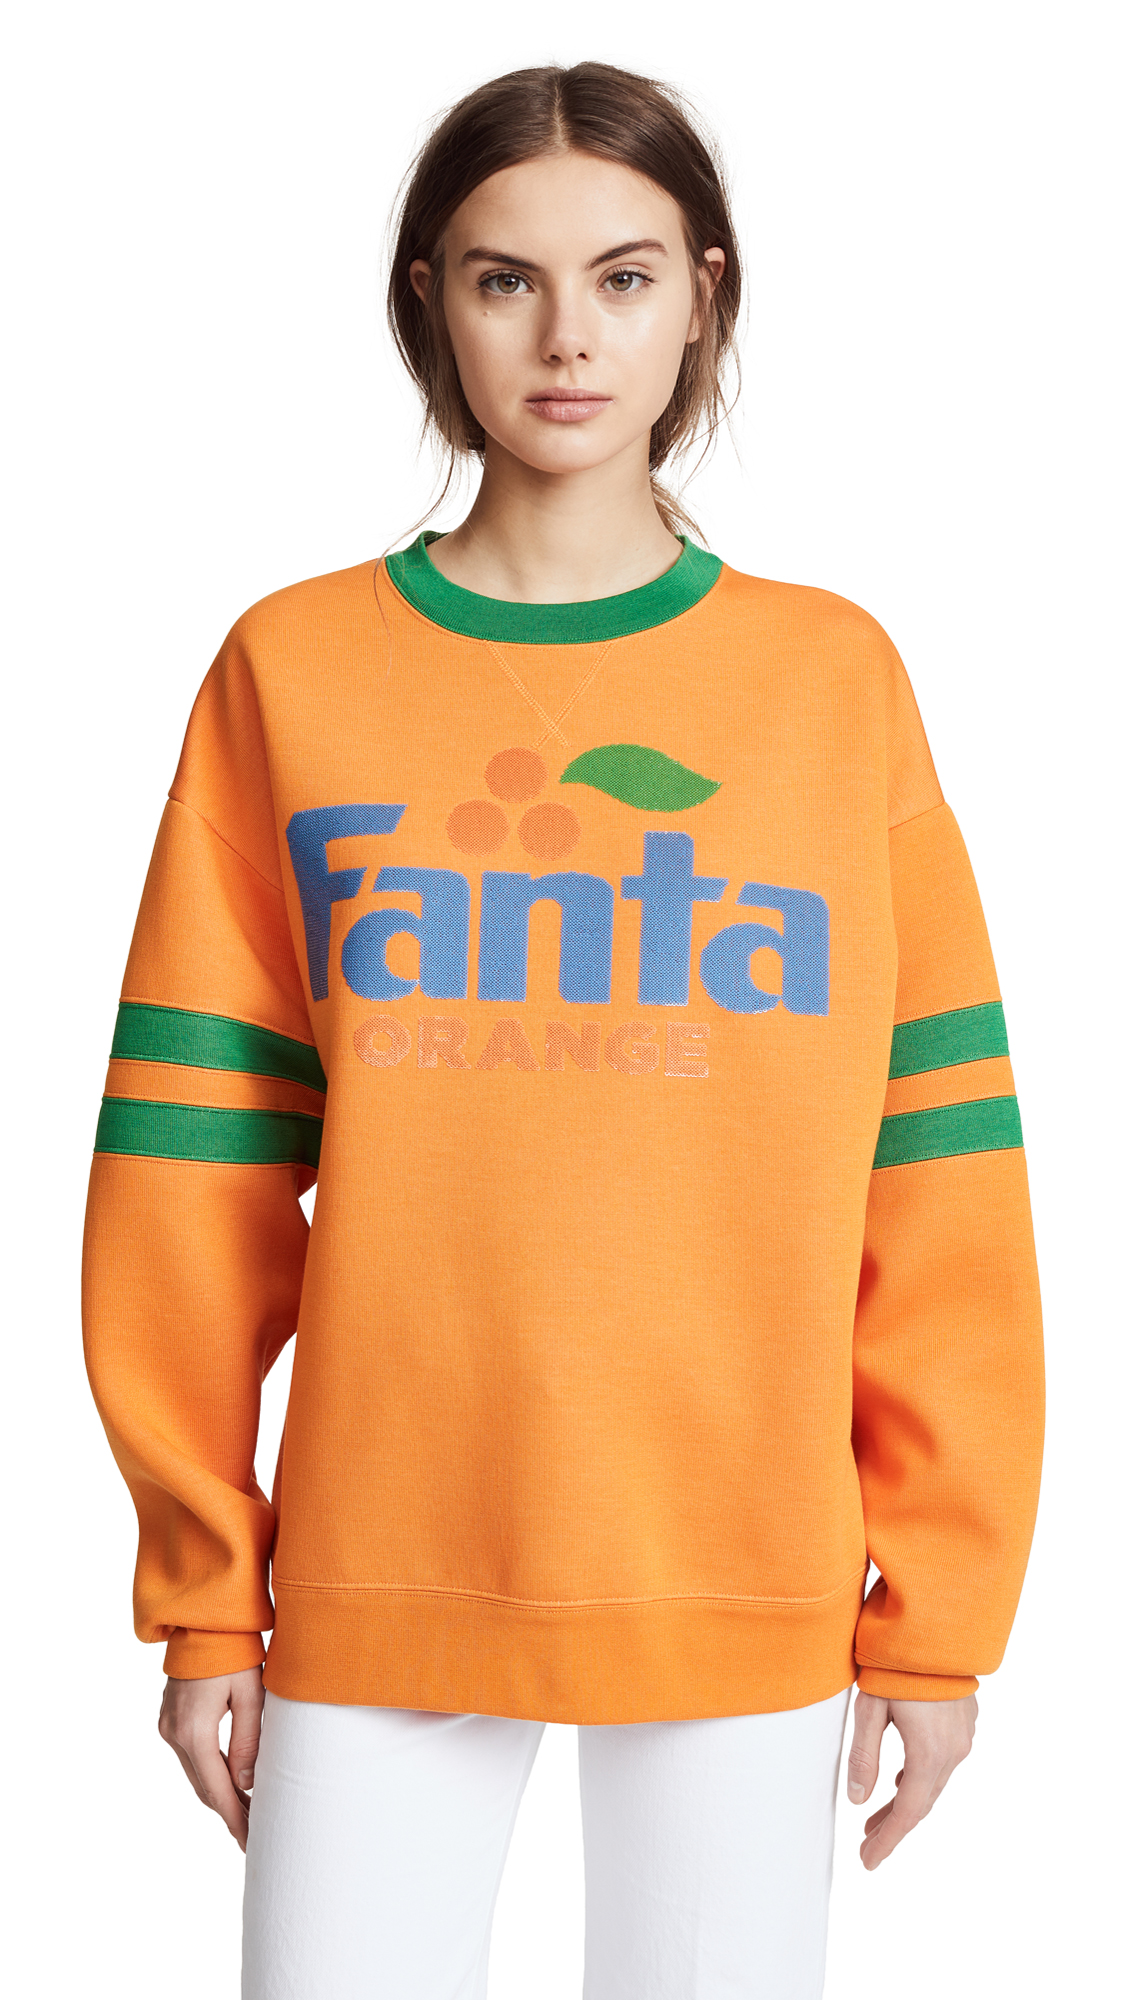 Marc Jacobs Fanta Sweatshirt with Long Sleeves & Crew Neckline In Orange Multi